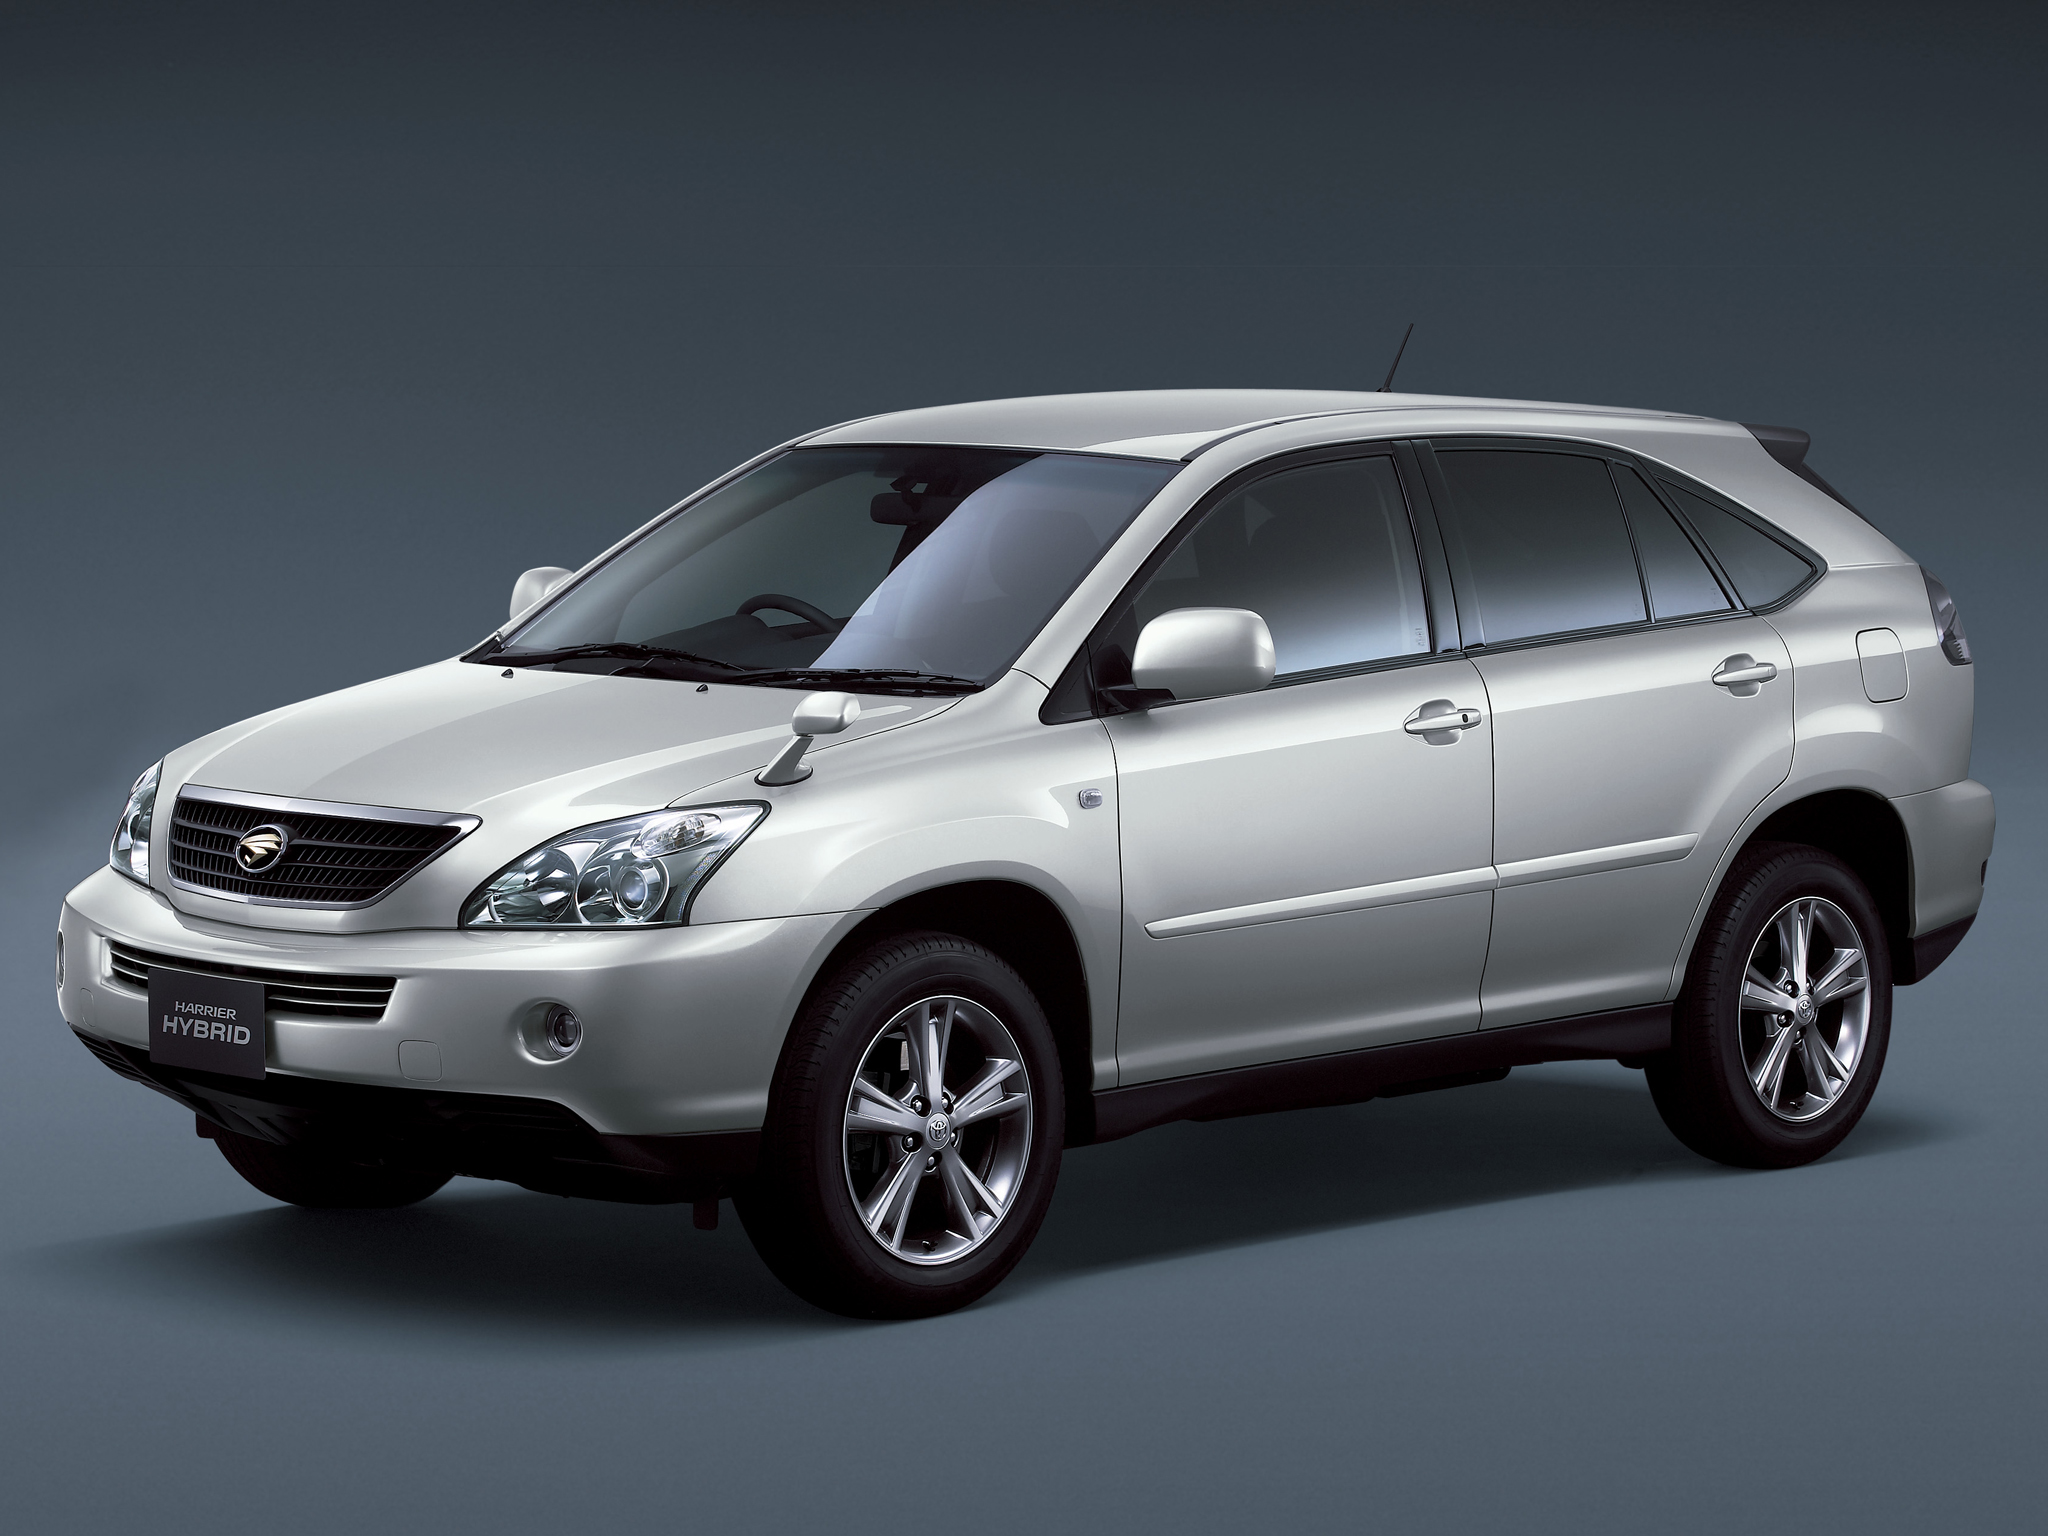 Toyota Harrier 2005 photo - 4